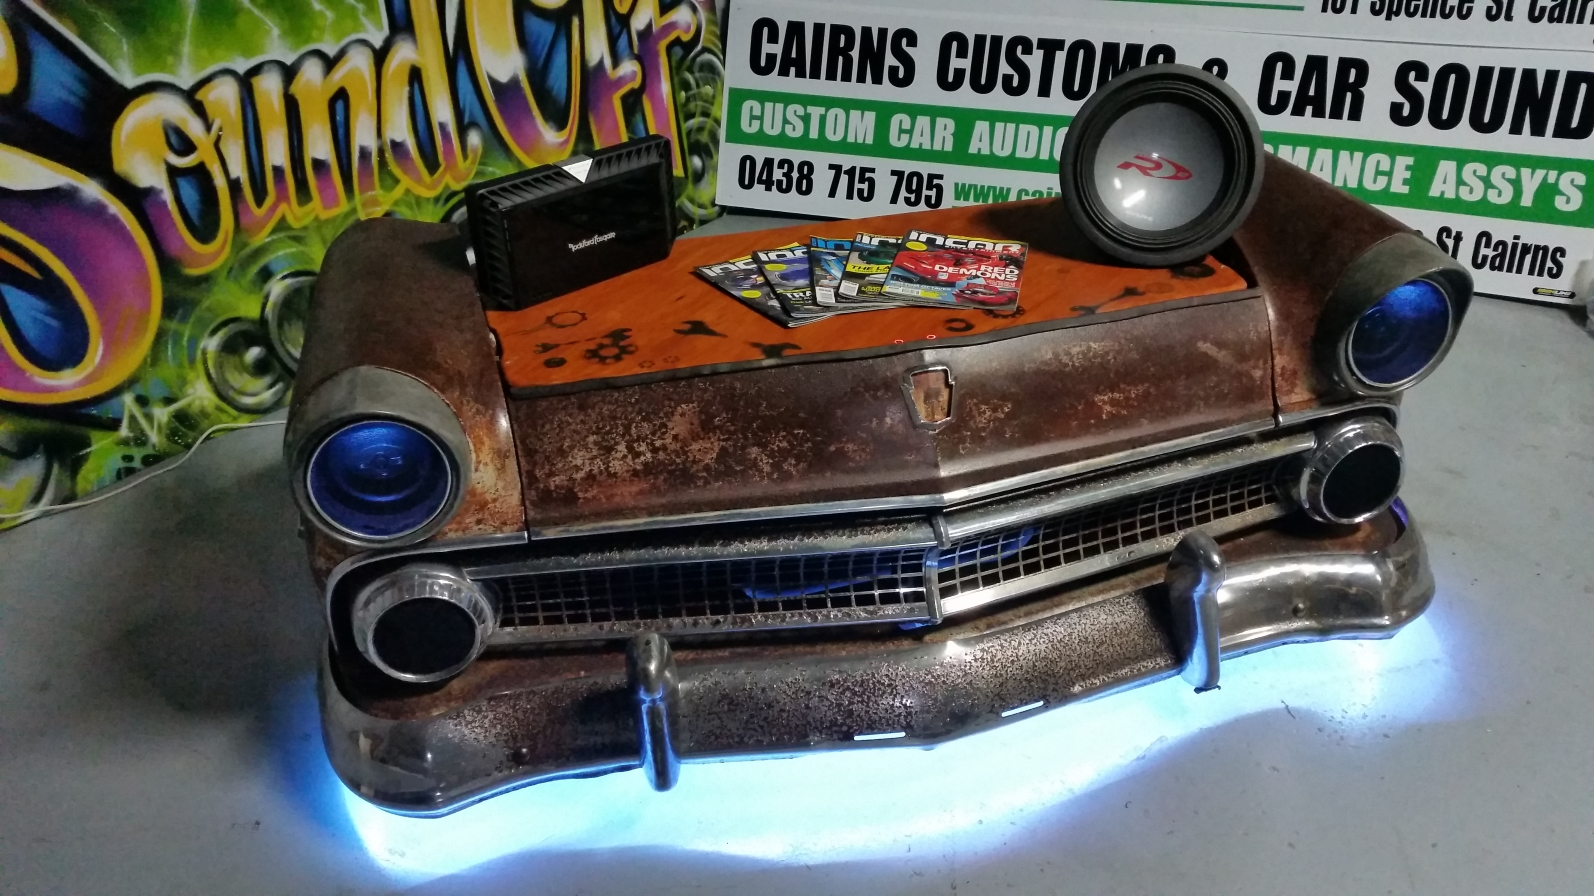 #7A3F25   Cairns Customs   Car Sound Highly Rated 9379 Air Conditioning Units Cairns wallpapers with 1594x896 px on helpvideos.info - Air Conditioners, Air Coolers and more